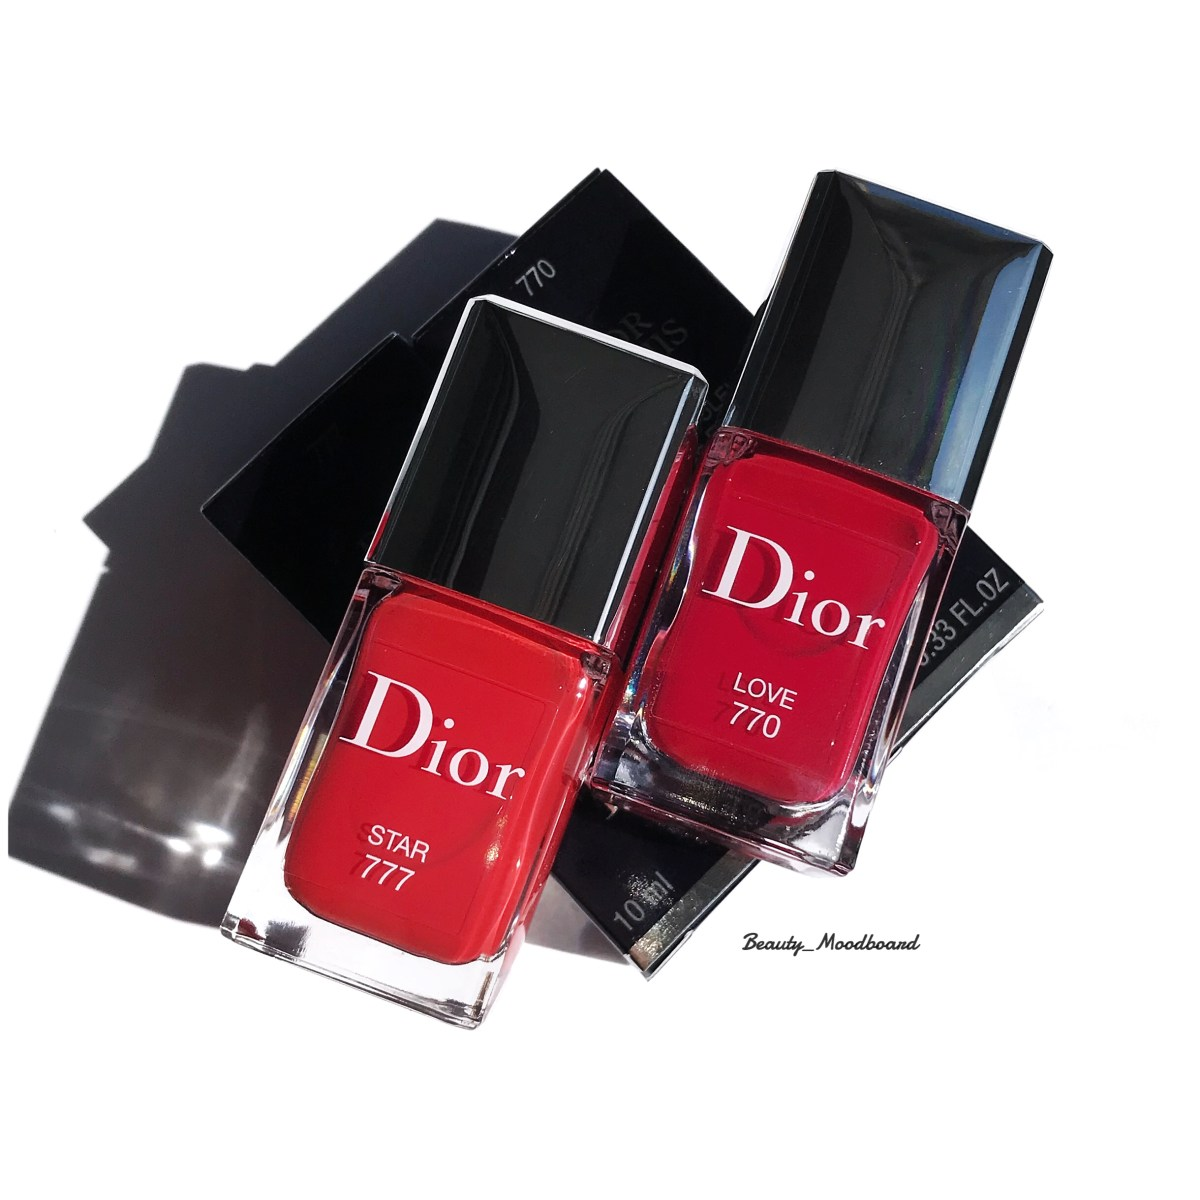 DIOROUGE Ultra Rouge Dior Vernis Love 770 et Vernis Star 777 #swatchparty ;)